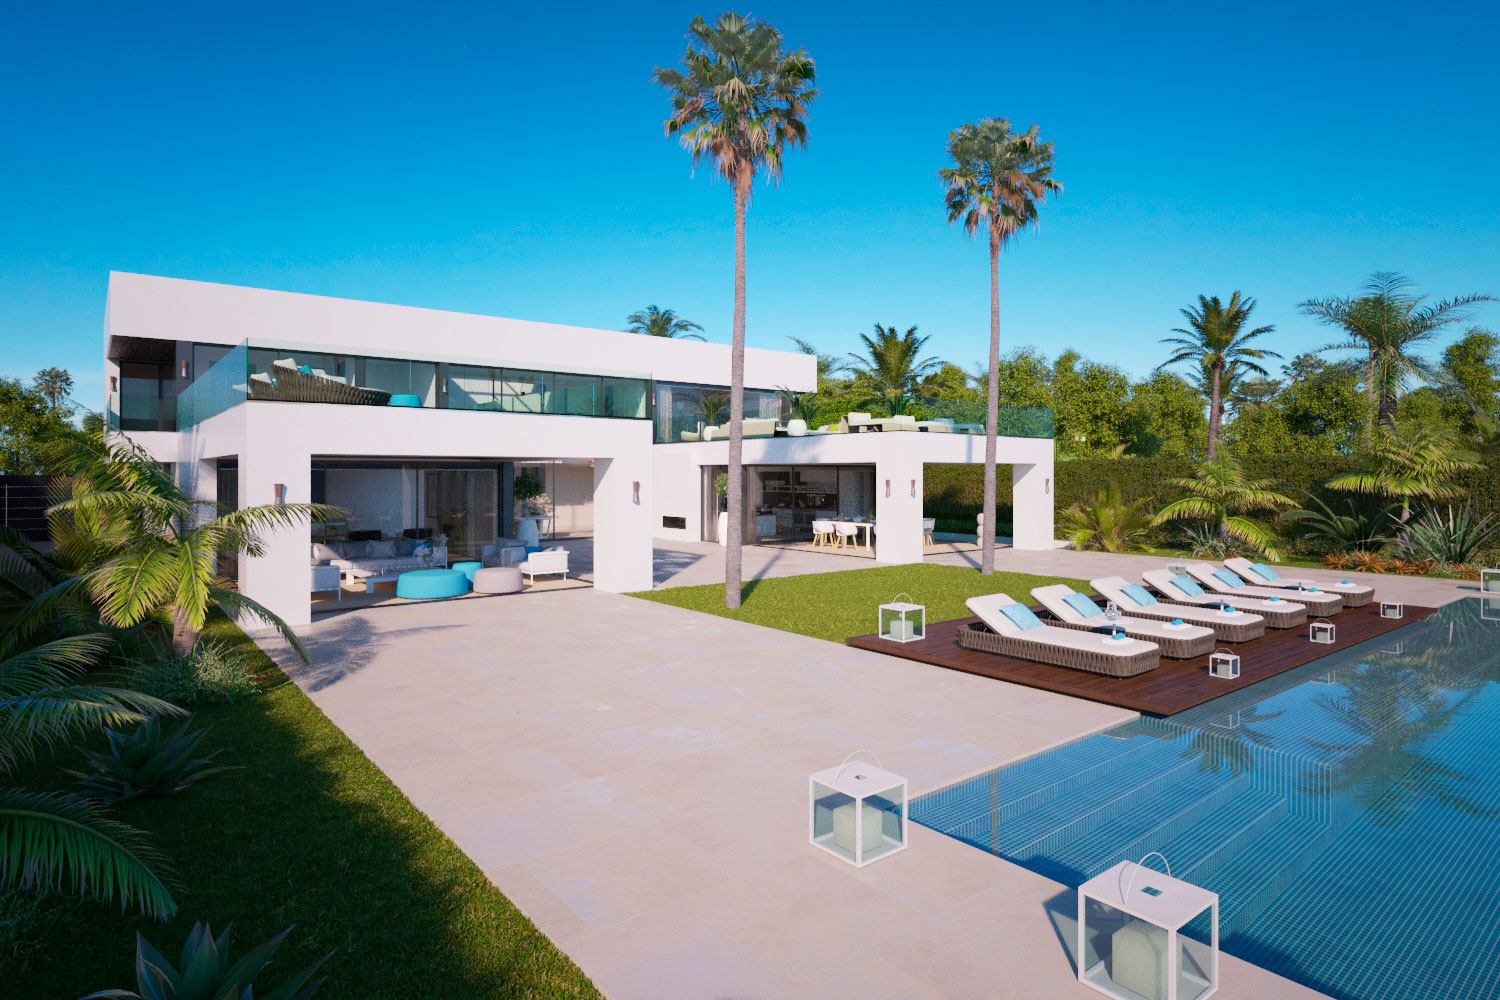 New Modern Villa in Paraiso For Sale